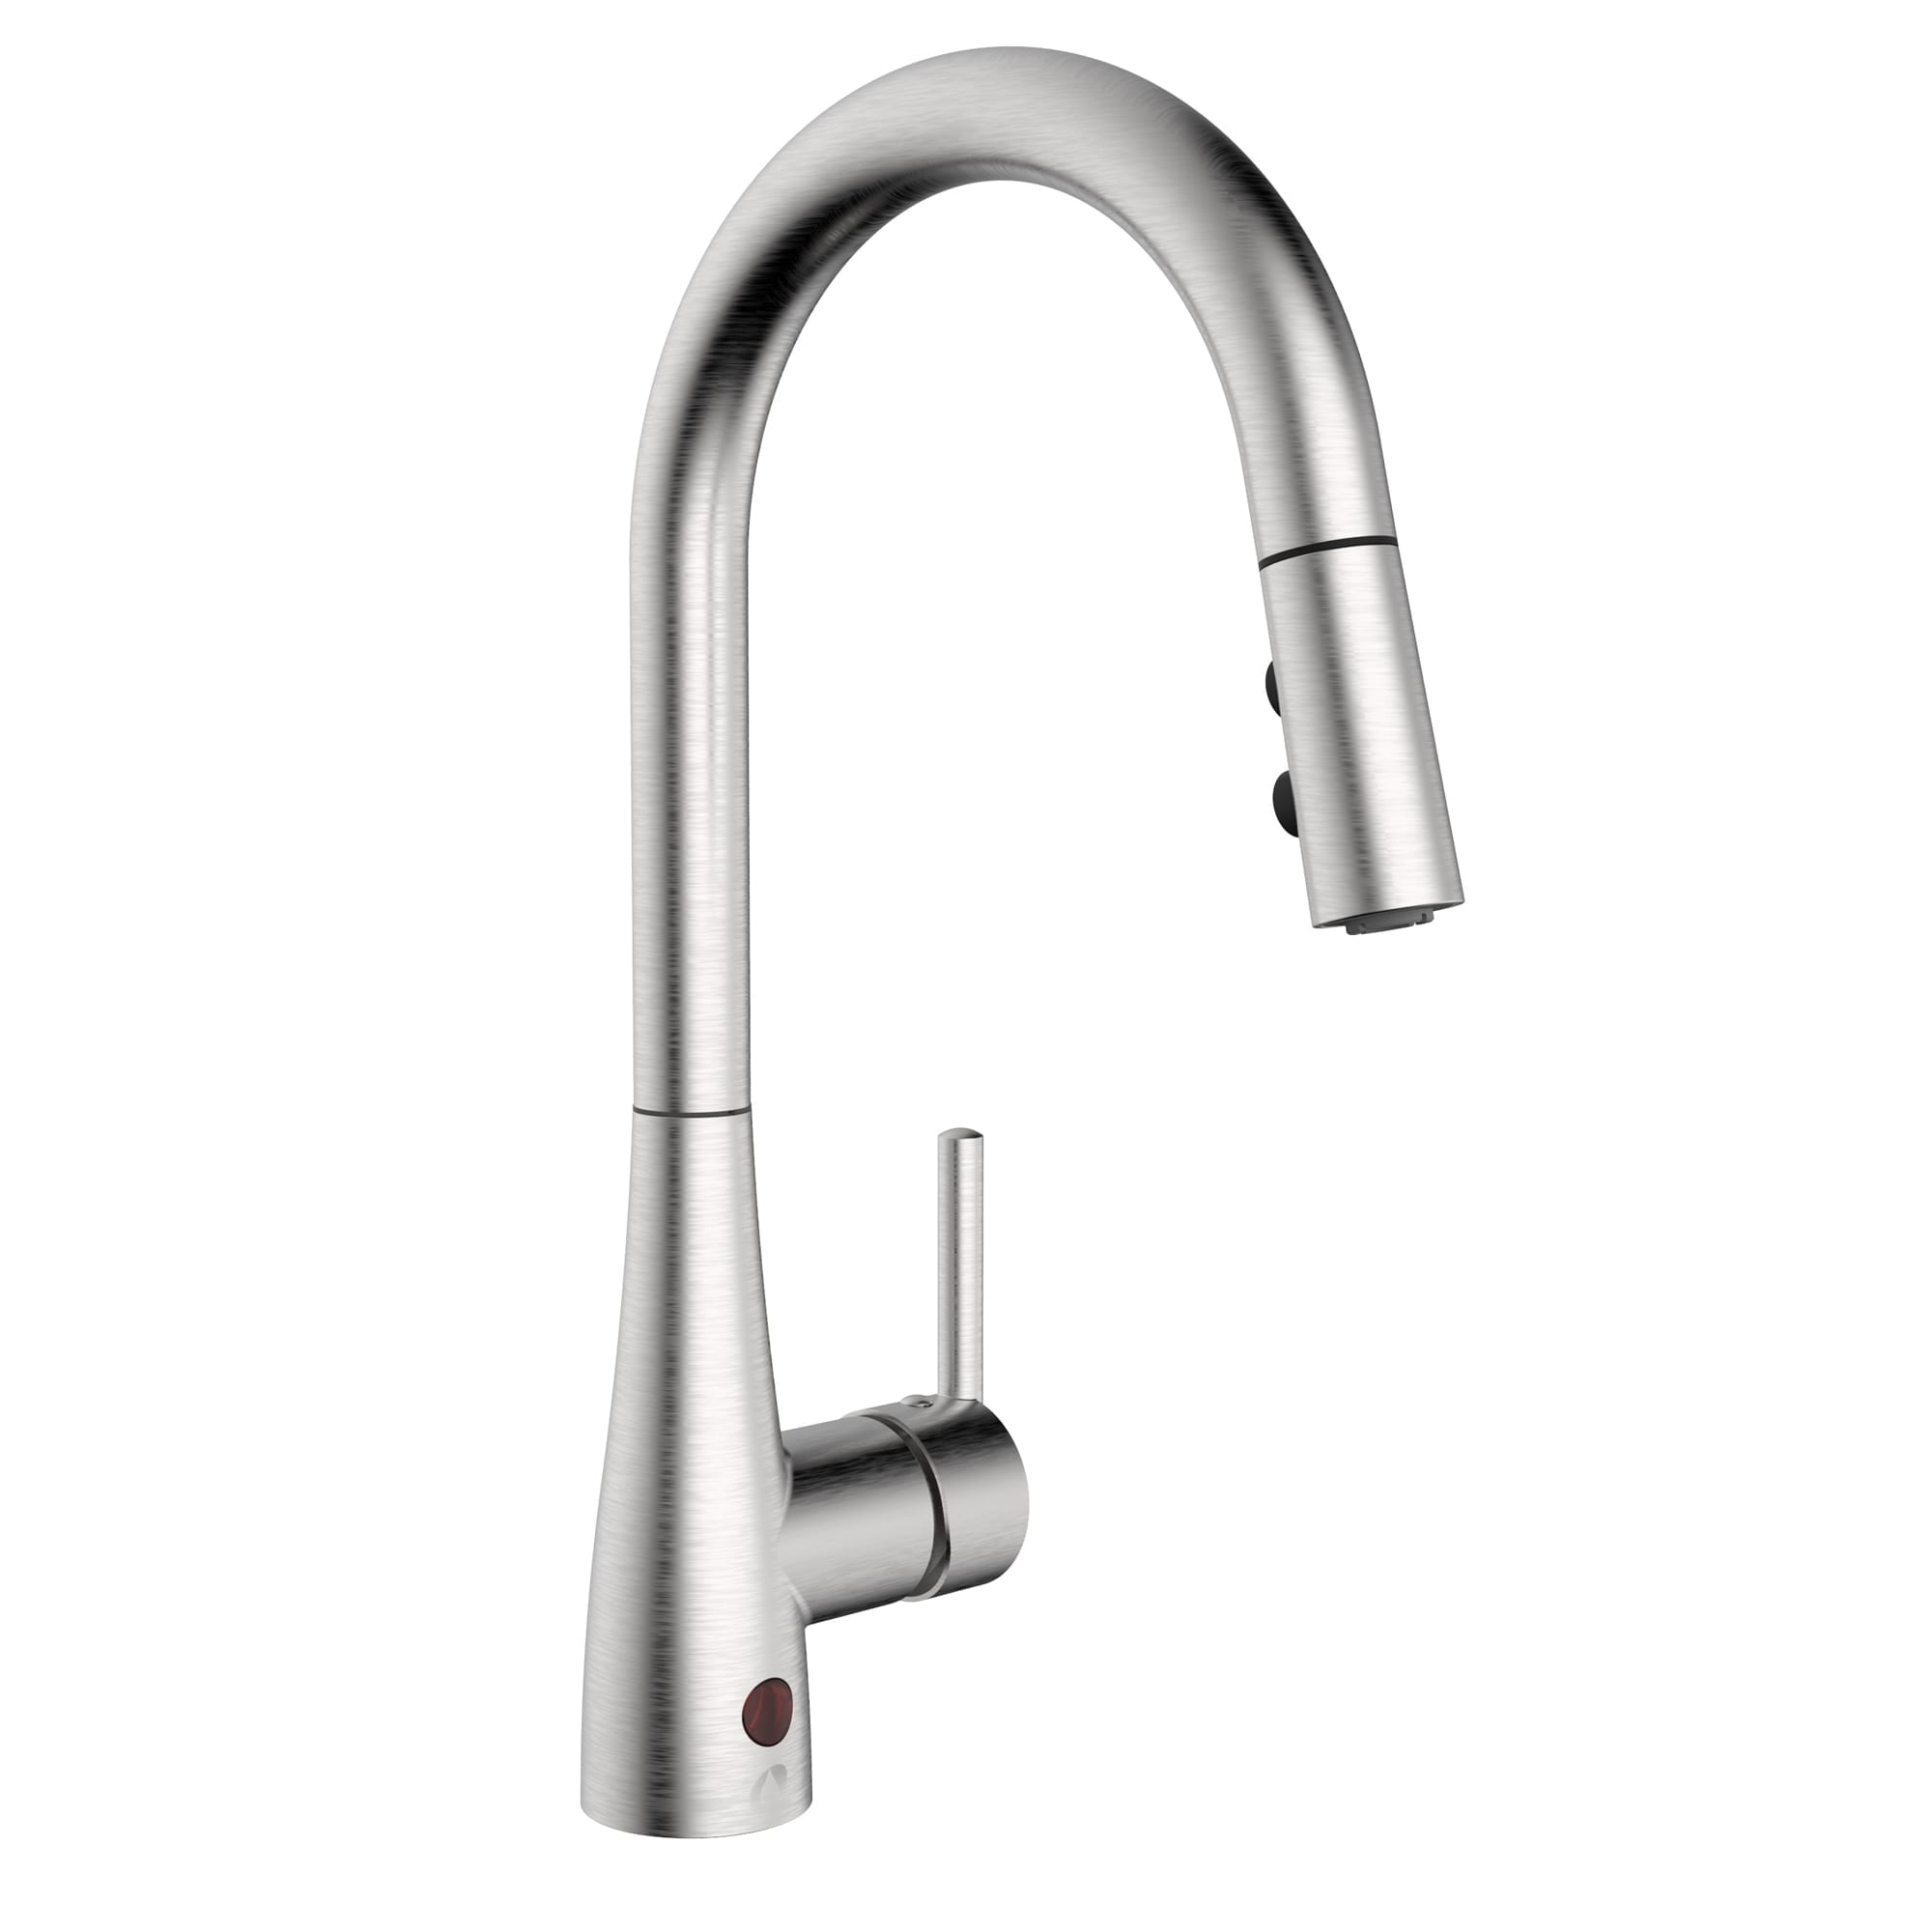 b kitchen sink products langer en side spout faucet upt pull with out shop swivel